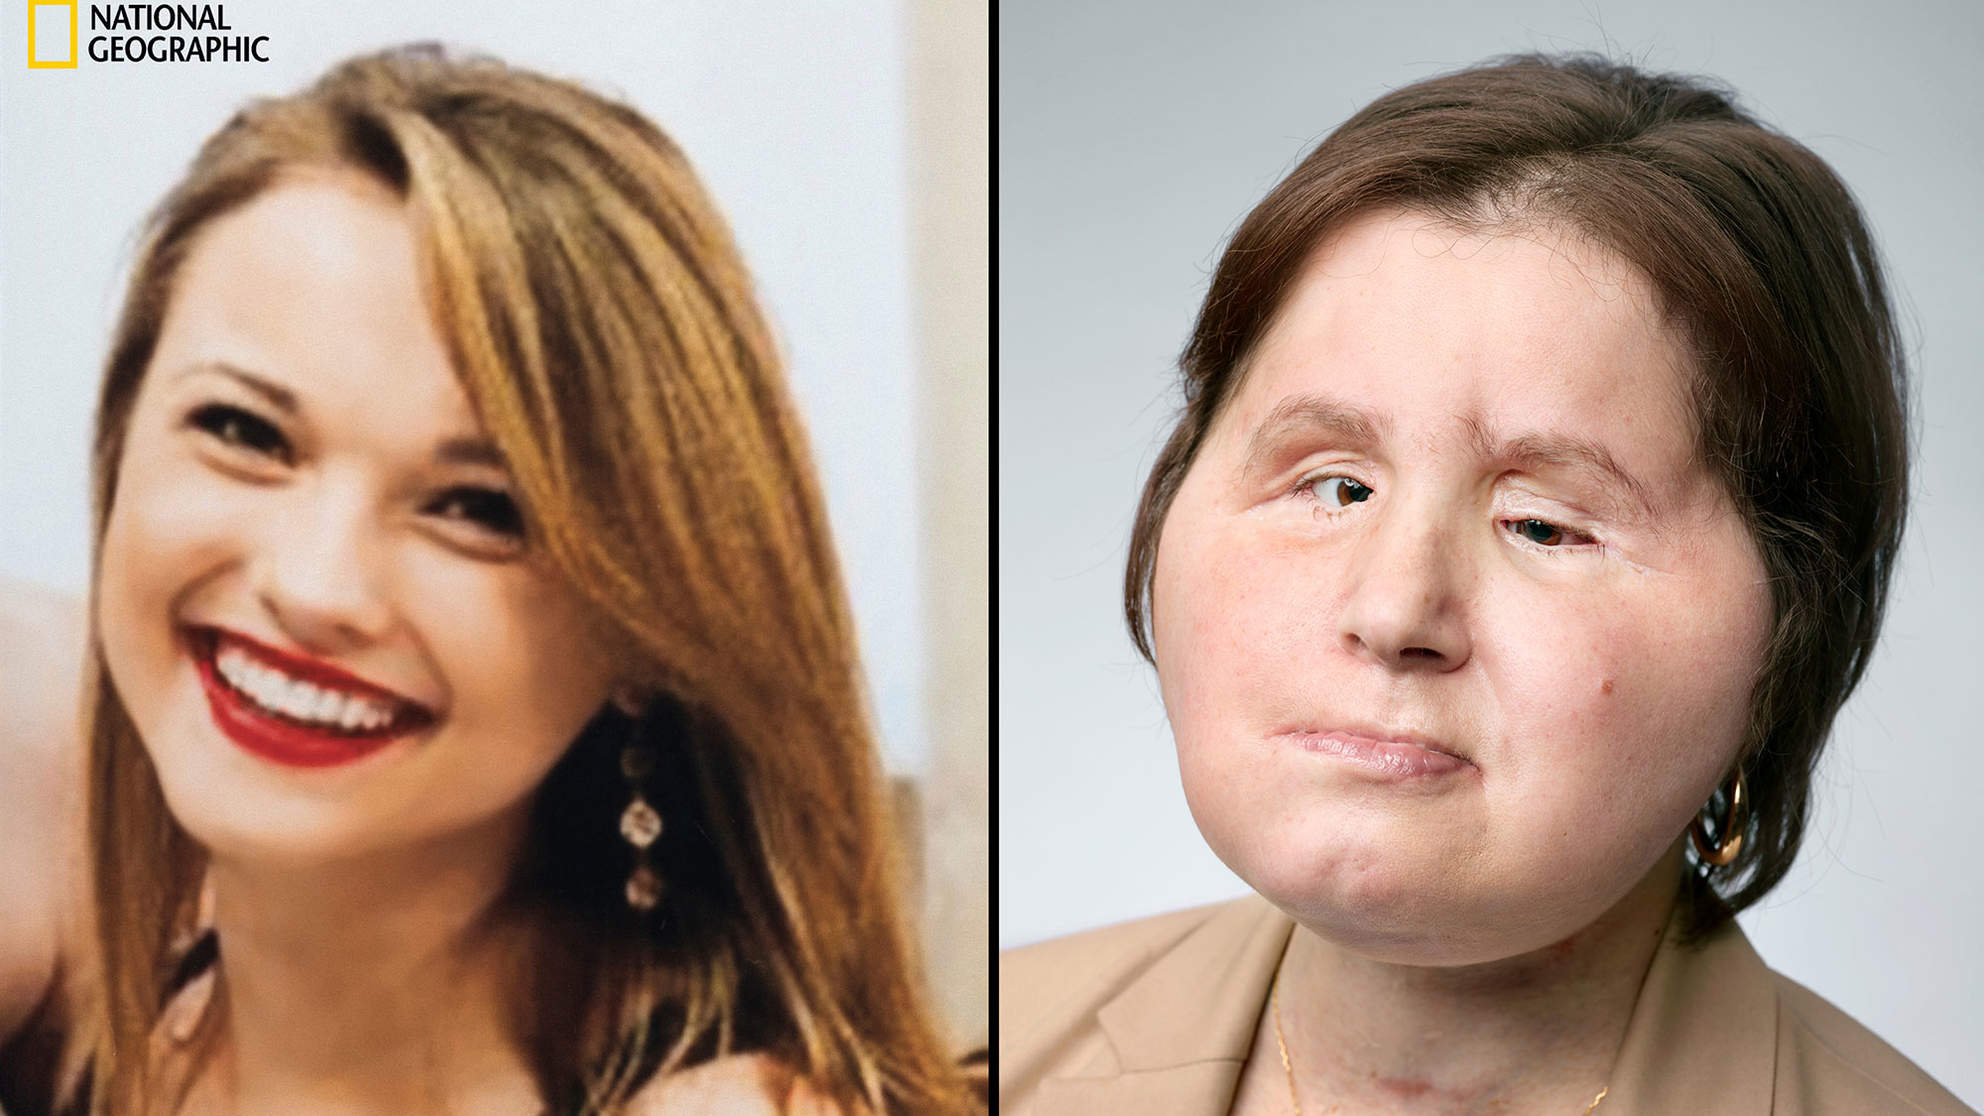 Suicide Attempt Survivor Shares Her Story One Year After Face Transplant Surgery